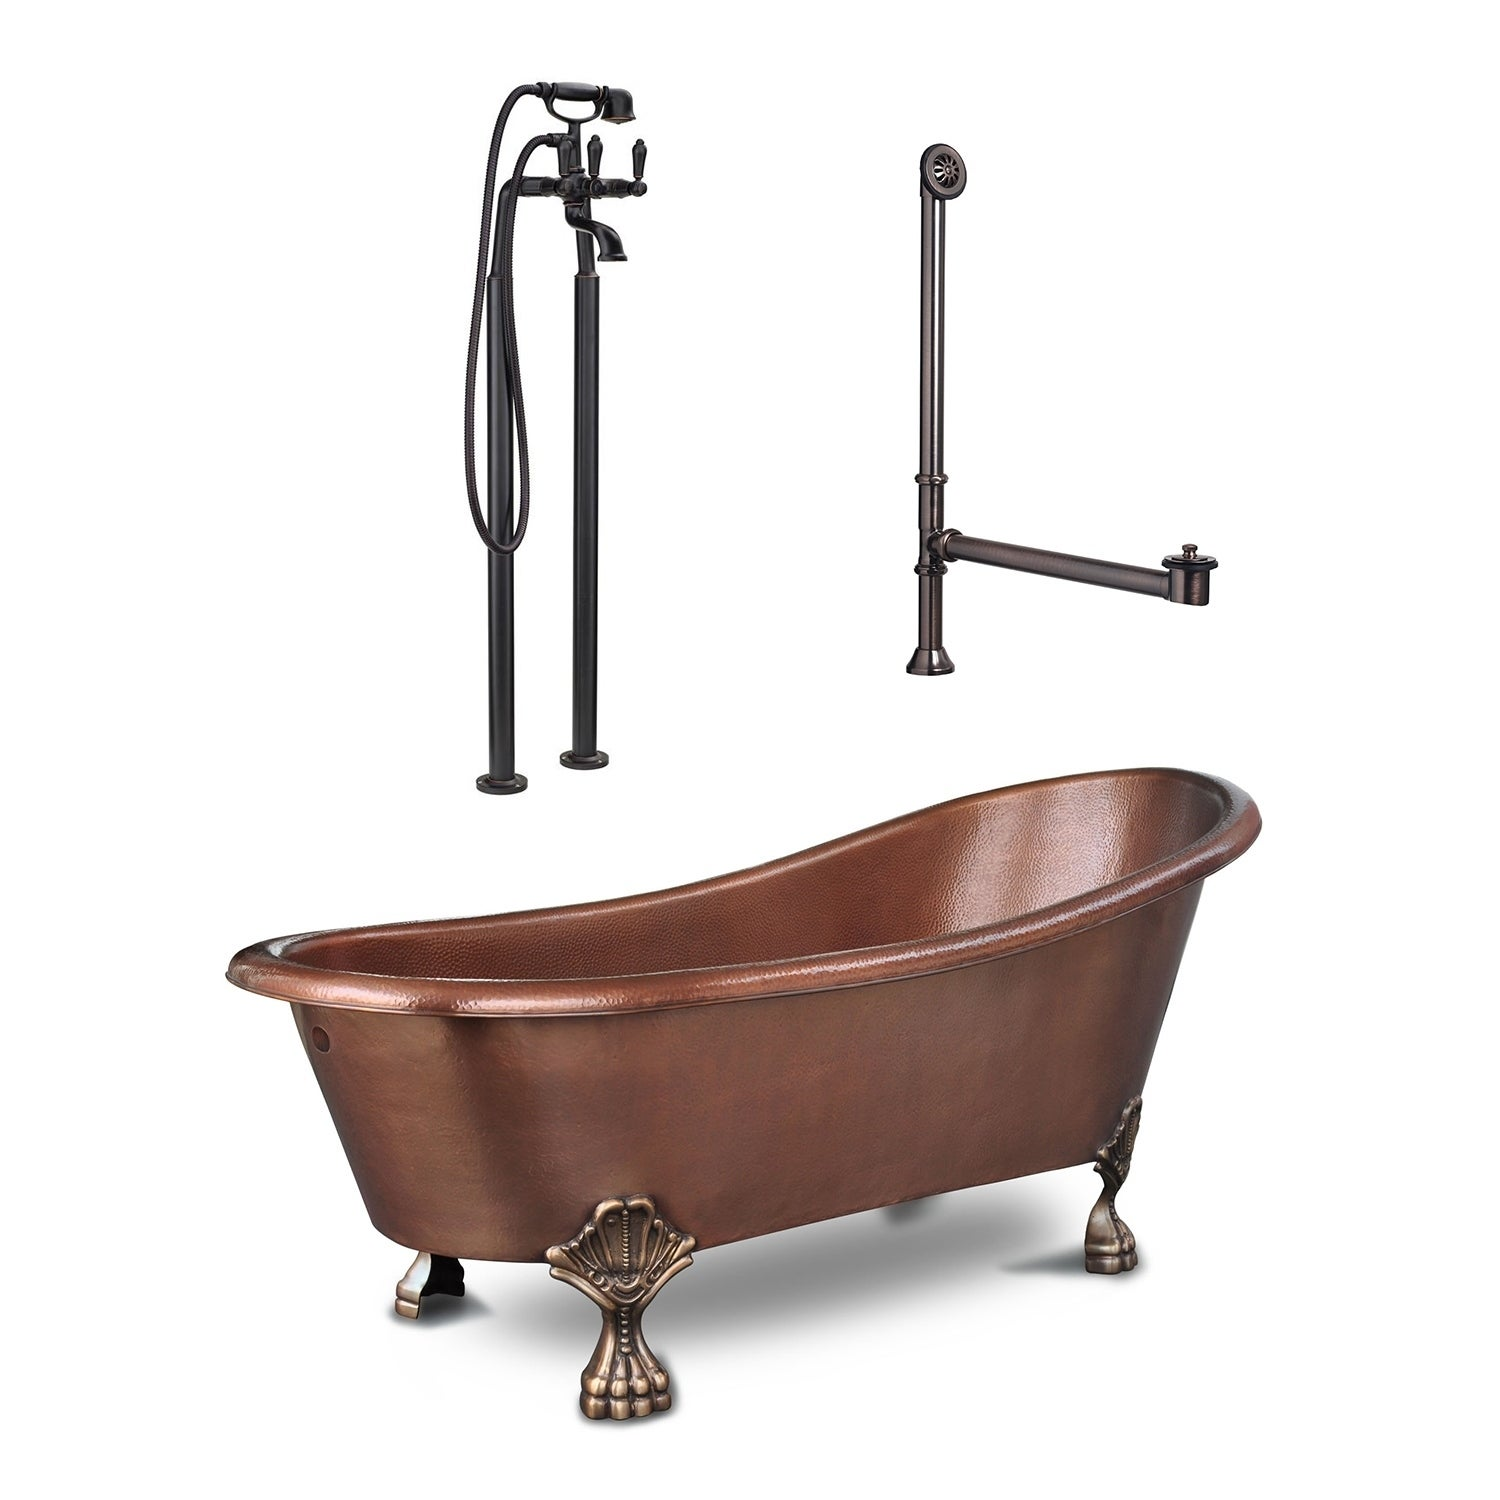 Heisenberg 5 5 Ft All In One Solid Copper Freestanding Claw Foot Bathtub Kit With Faucet And Drain In Antique Copper